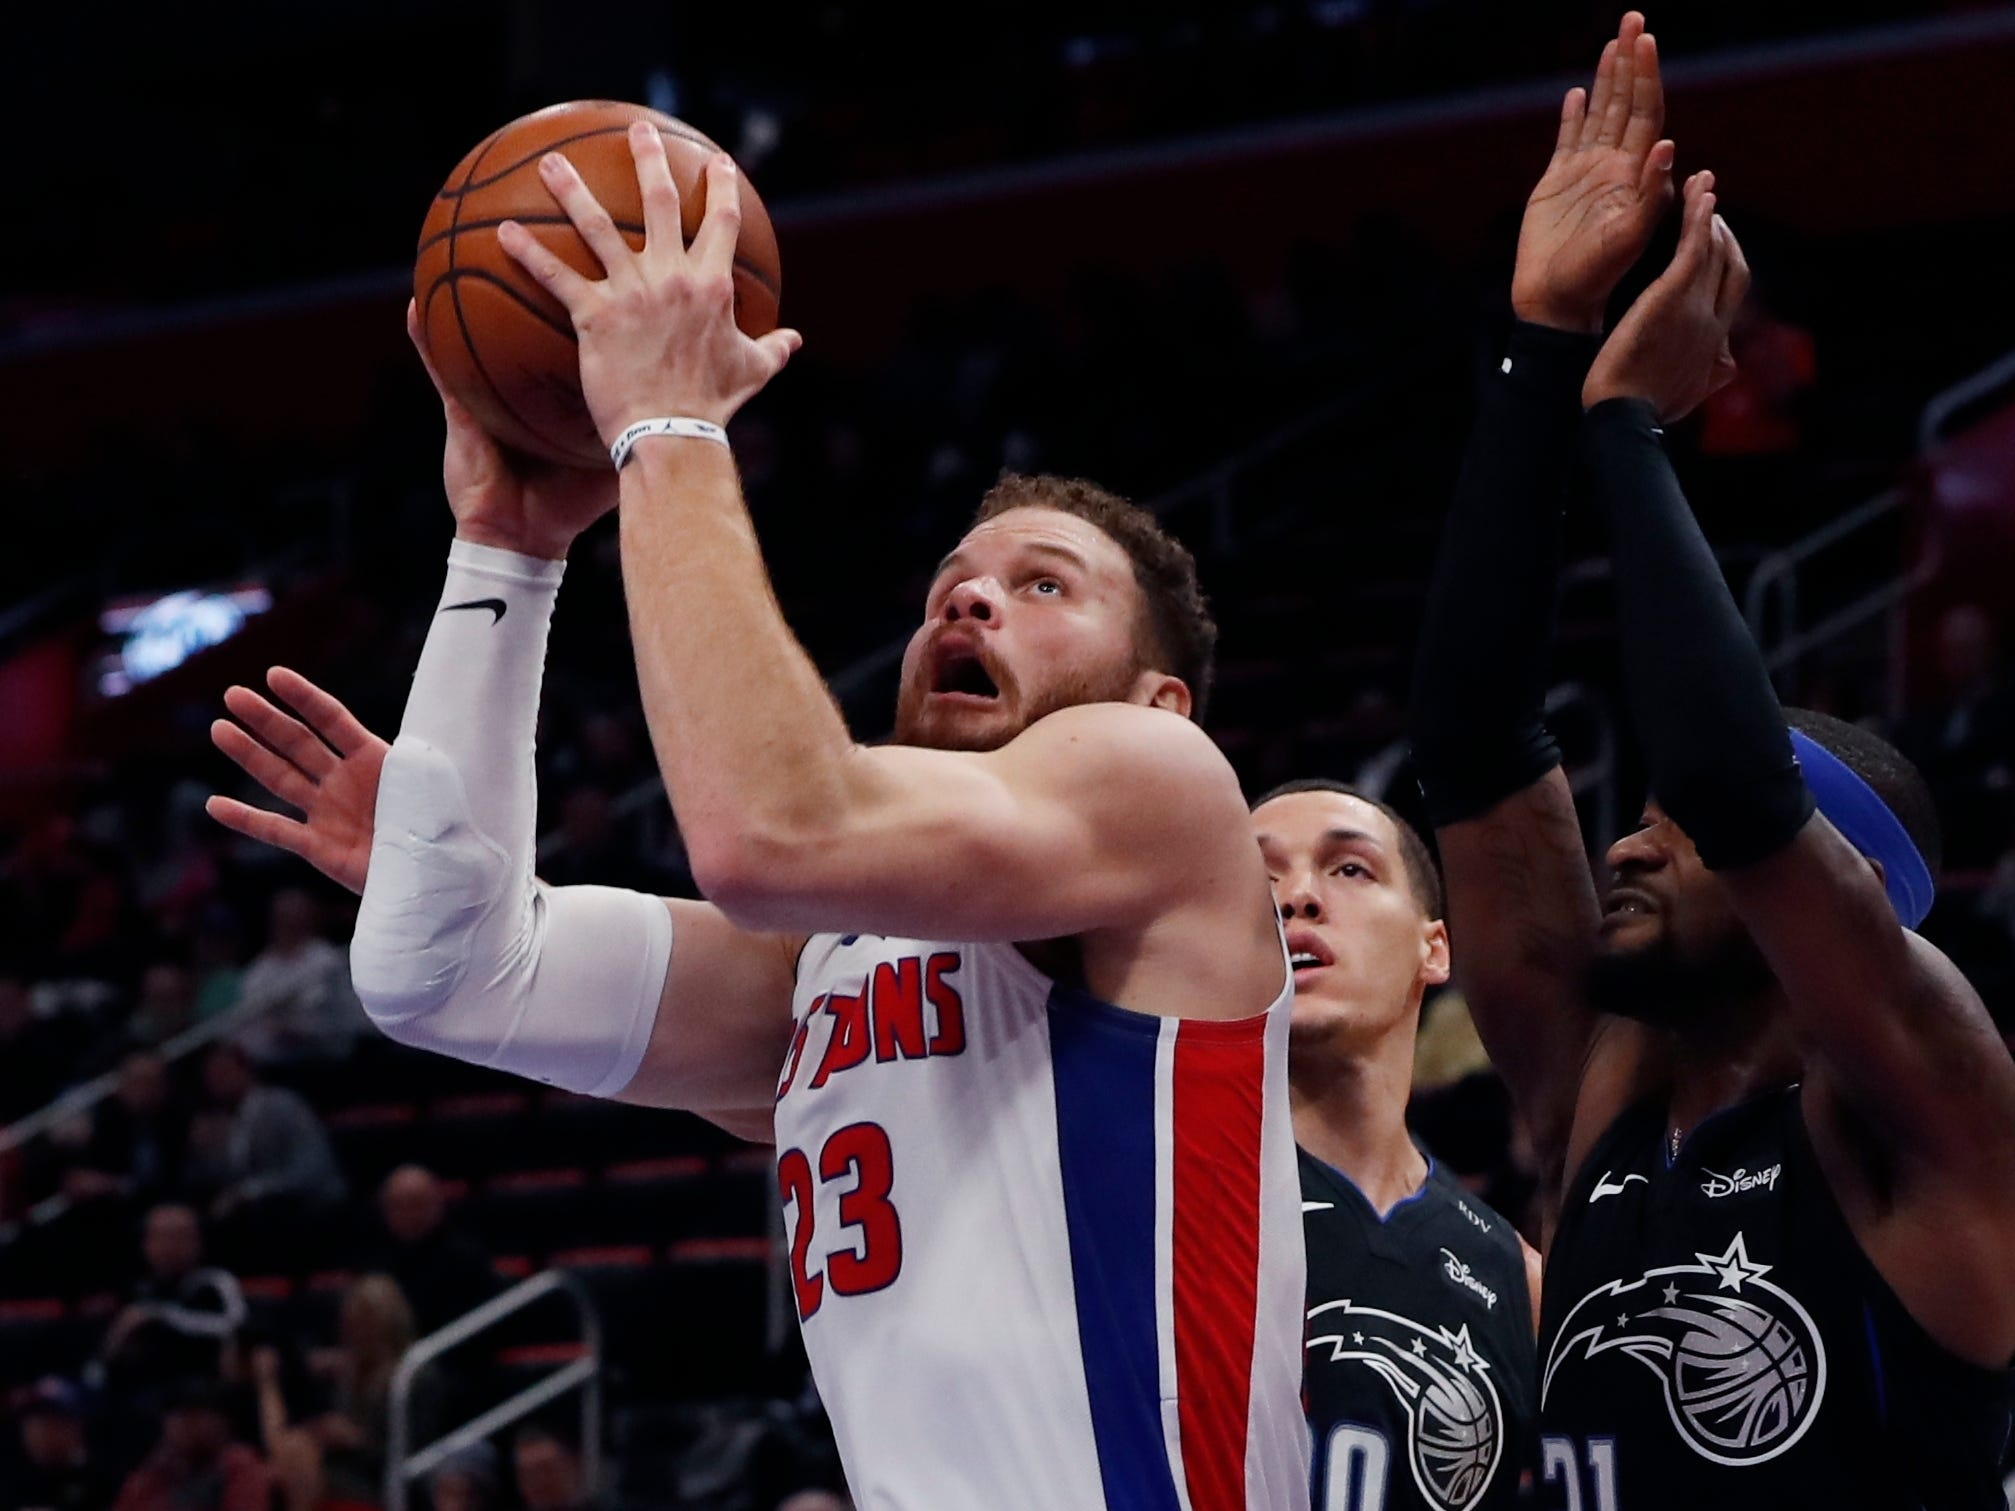 Detroit Pistons forward Blake Griffin (23) shoots as Orlando Magic forward Aaron Gordon (00) and guard Terrence Ross (31) defend during the first half.